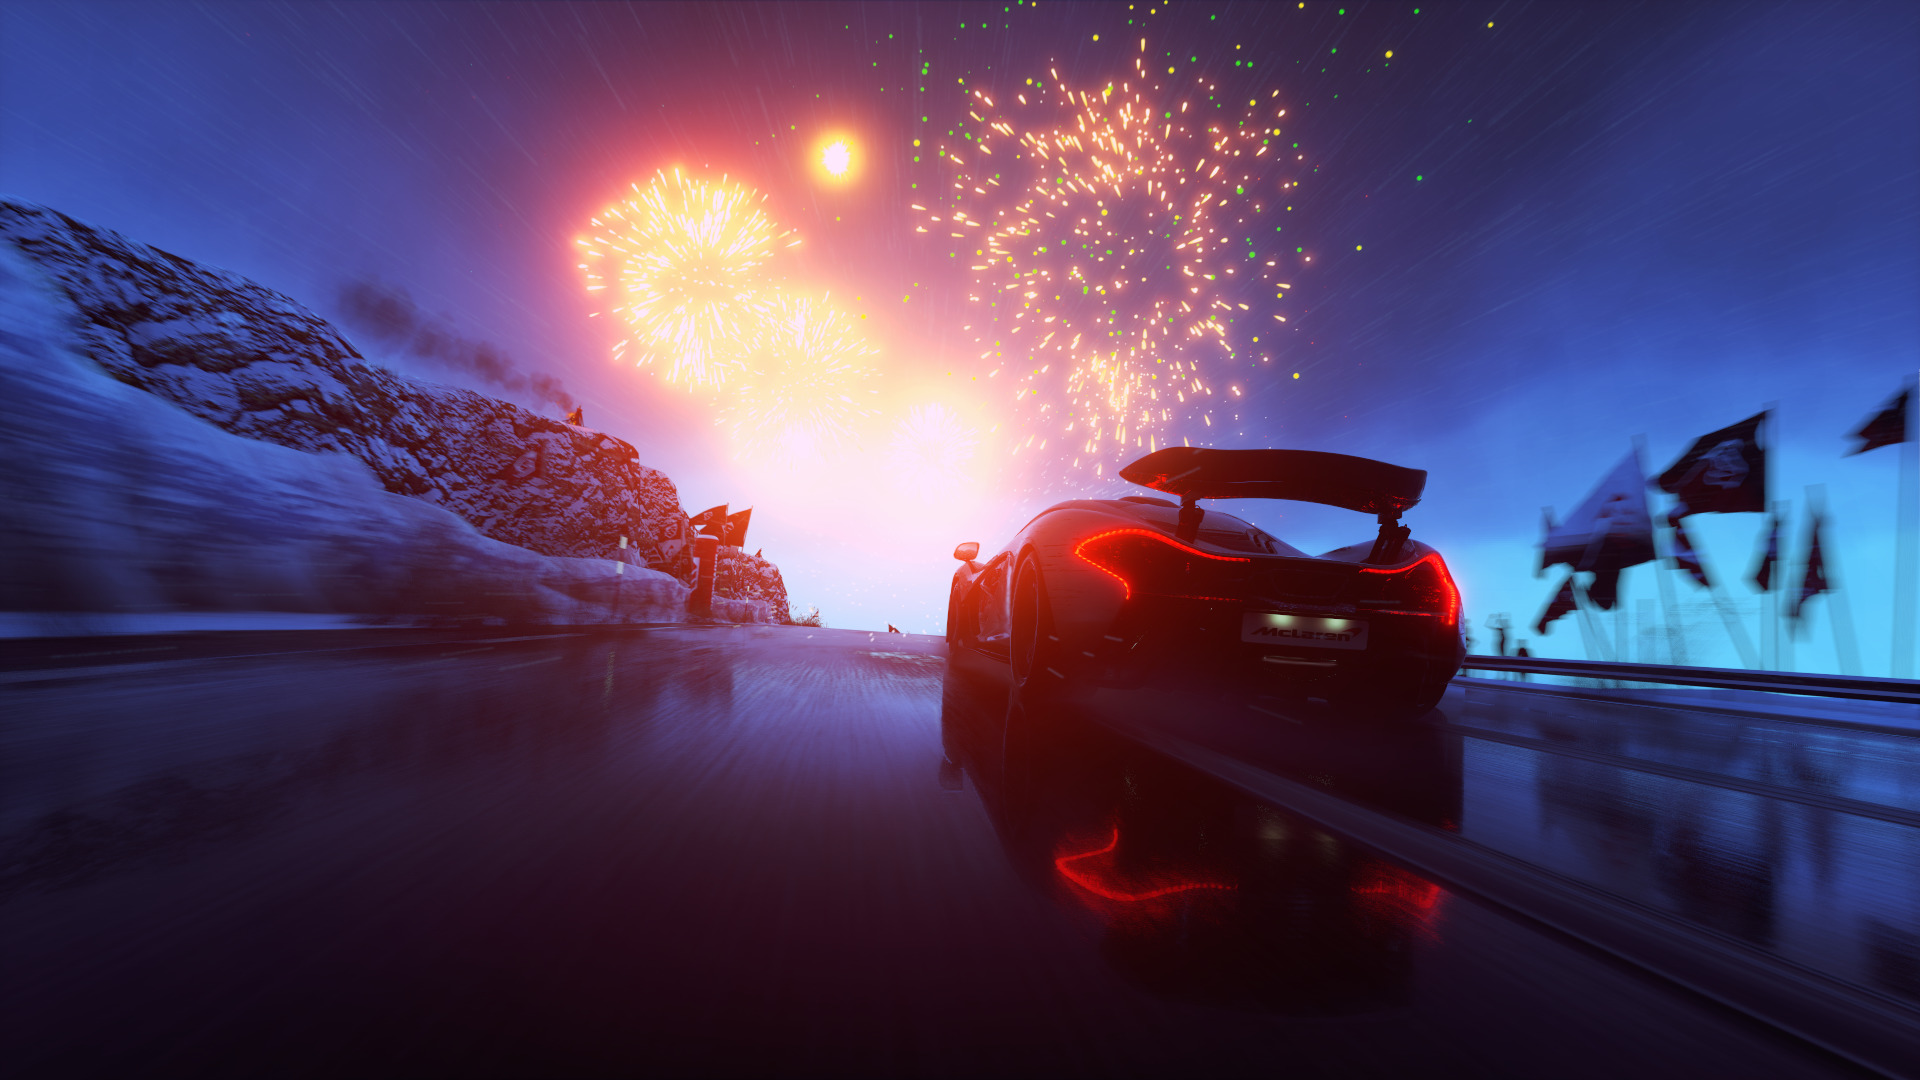 Car 5760x1080 Wallpaper Driveclub Car Fireworks Video Games Mclaren Wallpapers